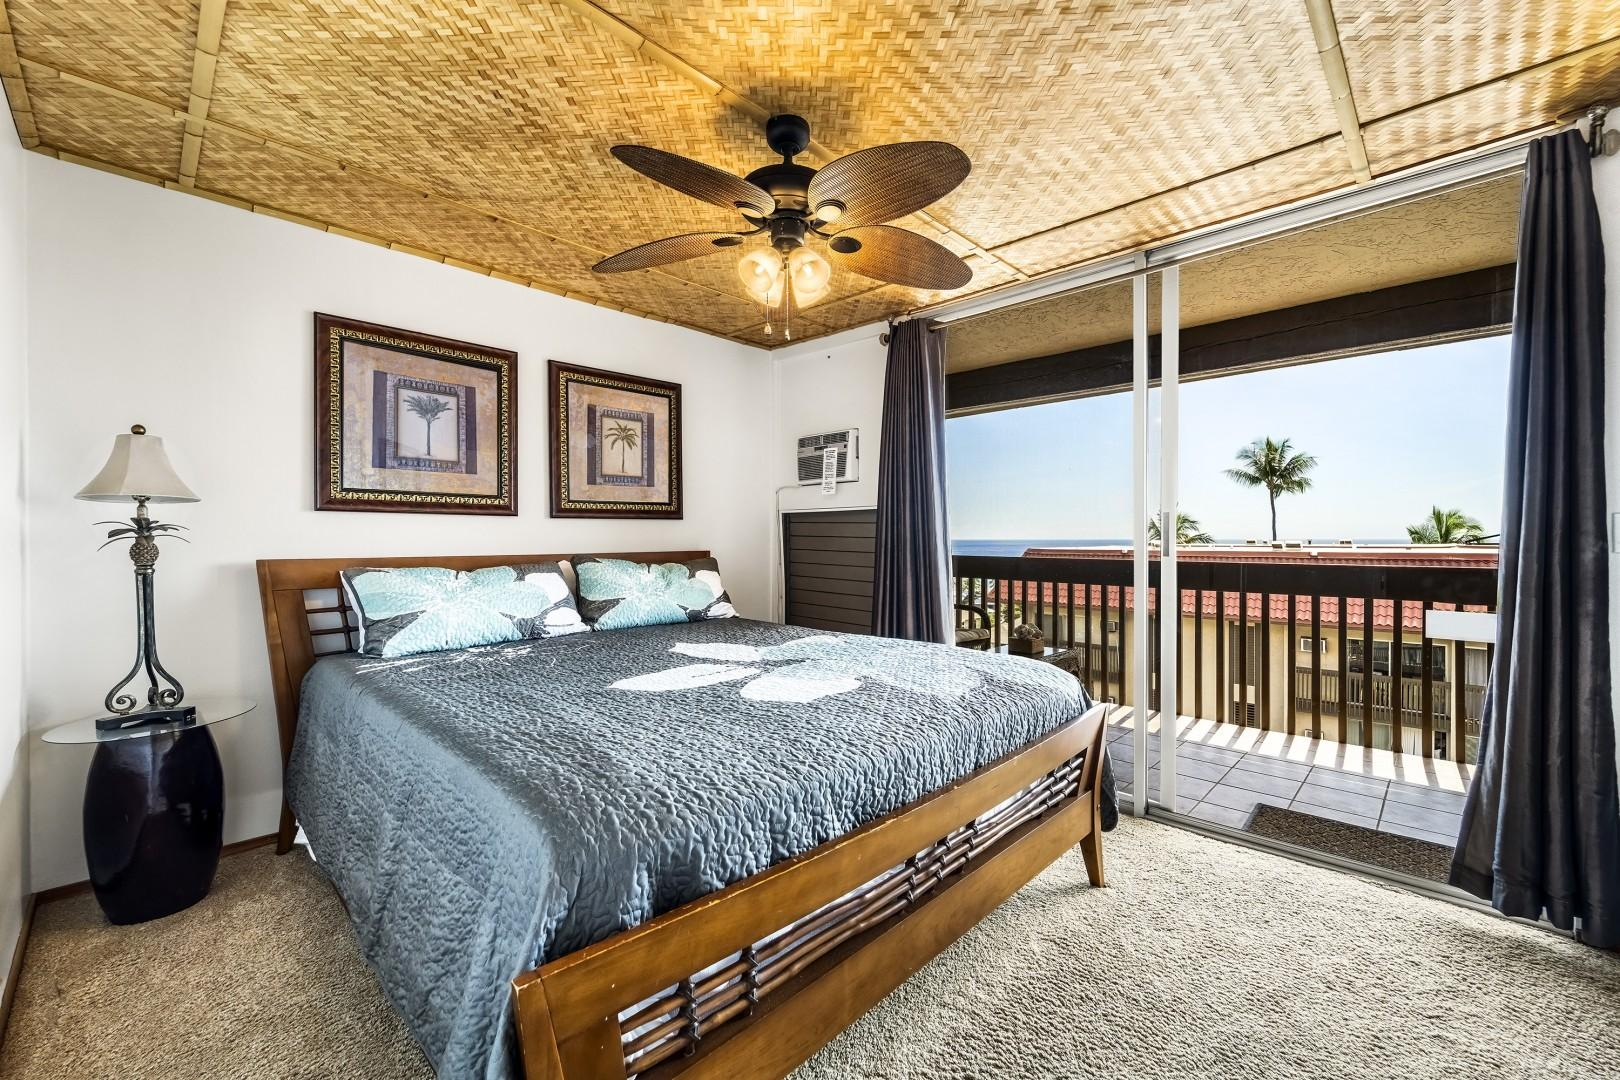 Master bedroom equipped with A/C and King bed